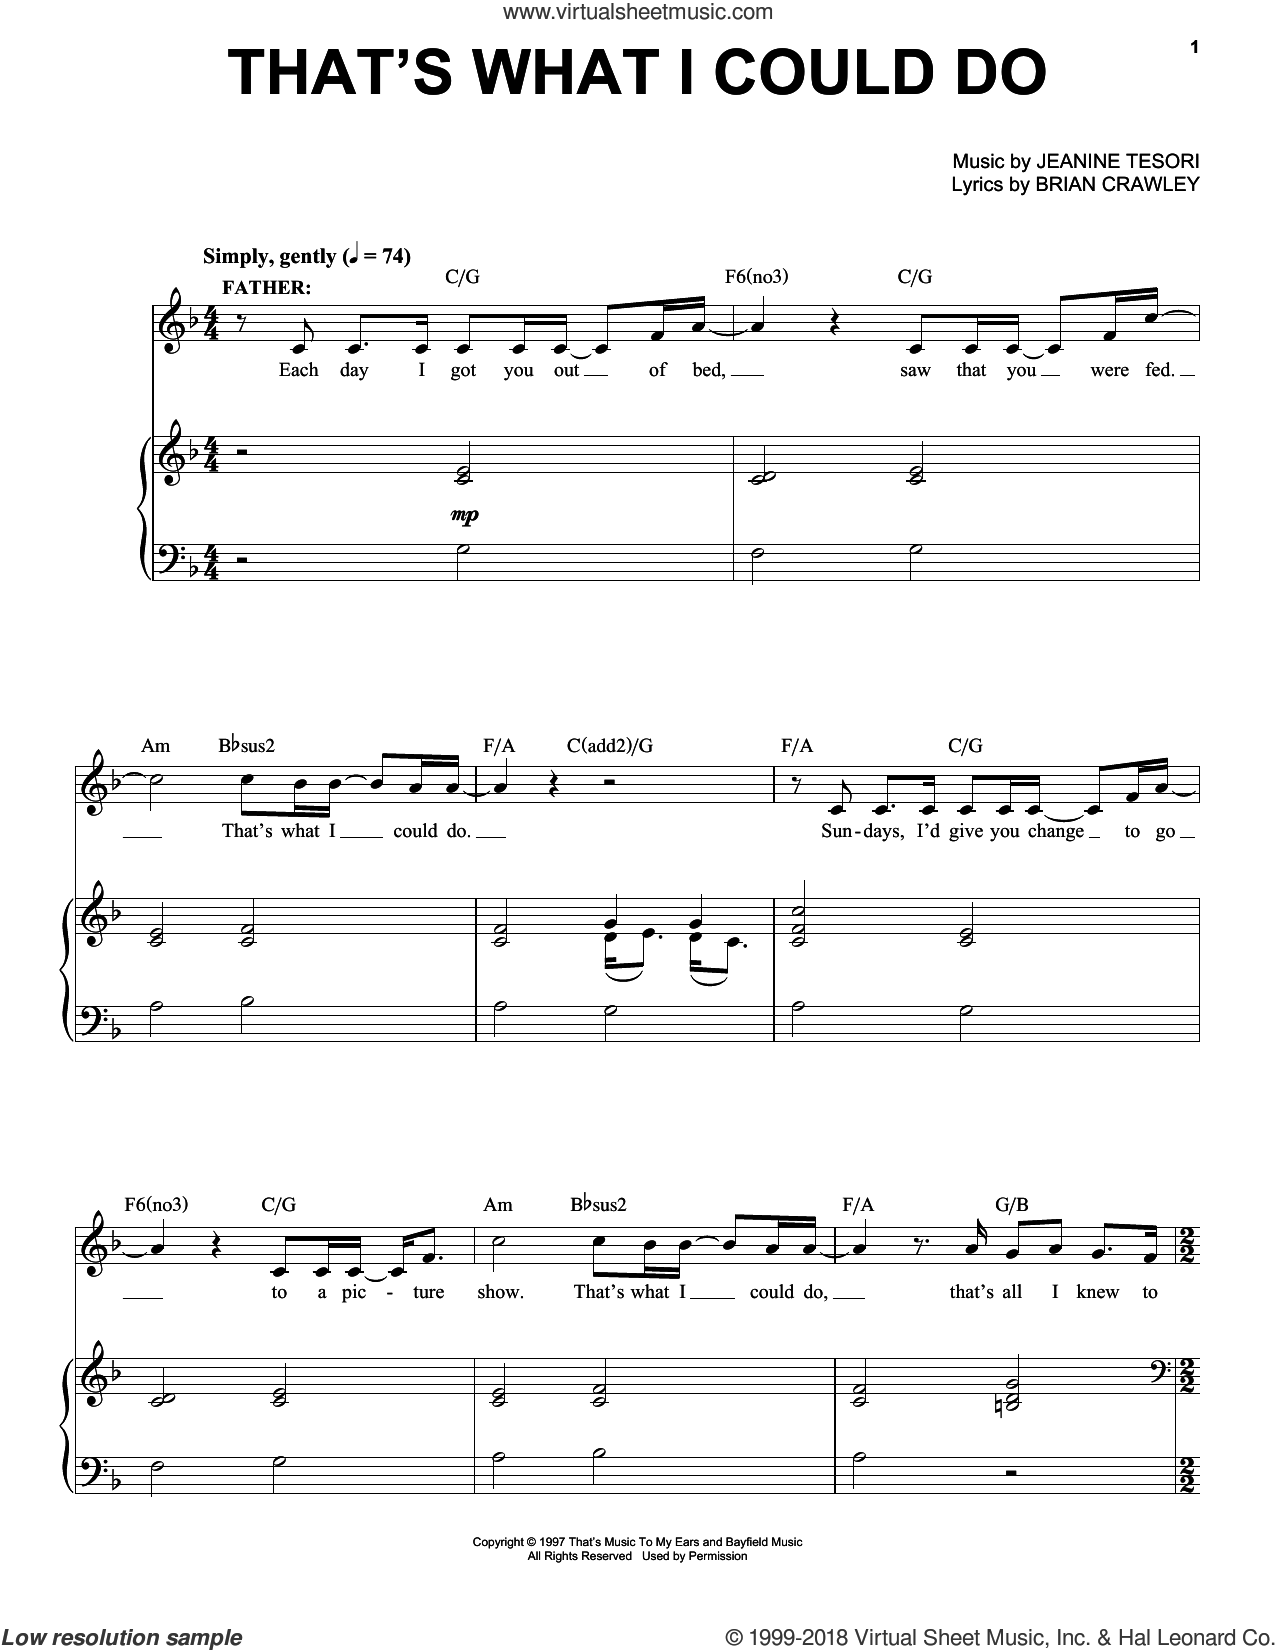 That's What I Could Do sheet music for voice and piano by Jeanine Tesori. Score Image Preview.